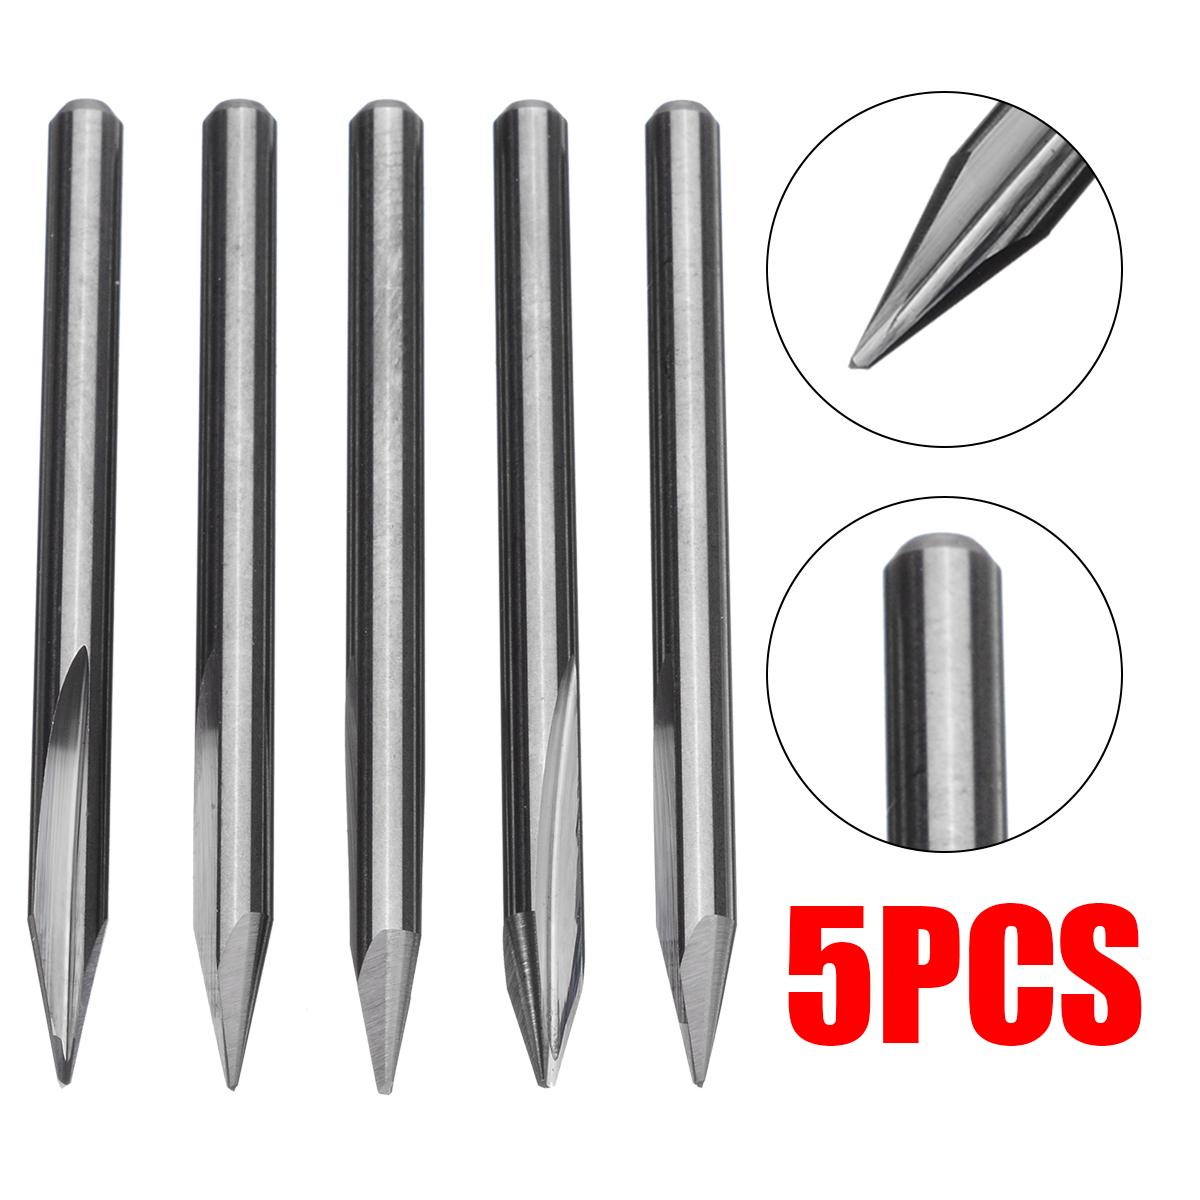 5pcs/set Tungsten Carbide Milling Cutters Carbide Engraving CNC Bit Router Tool 3.175 30 Degree Tip End Mill